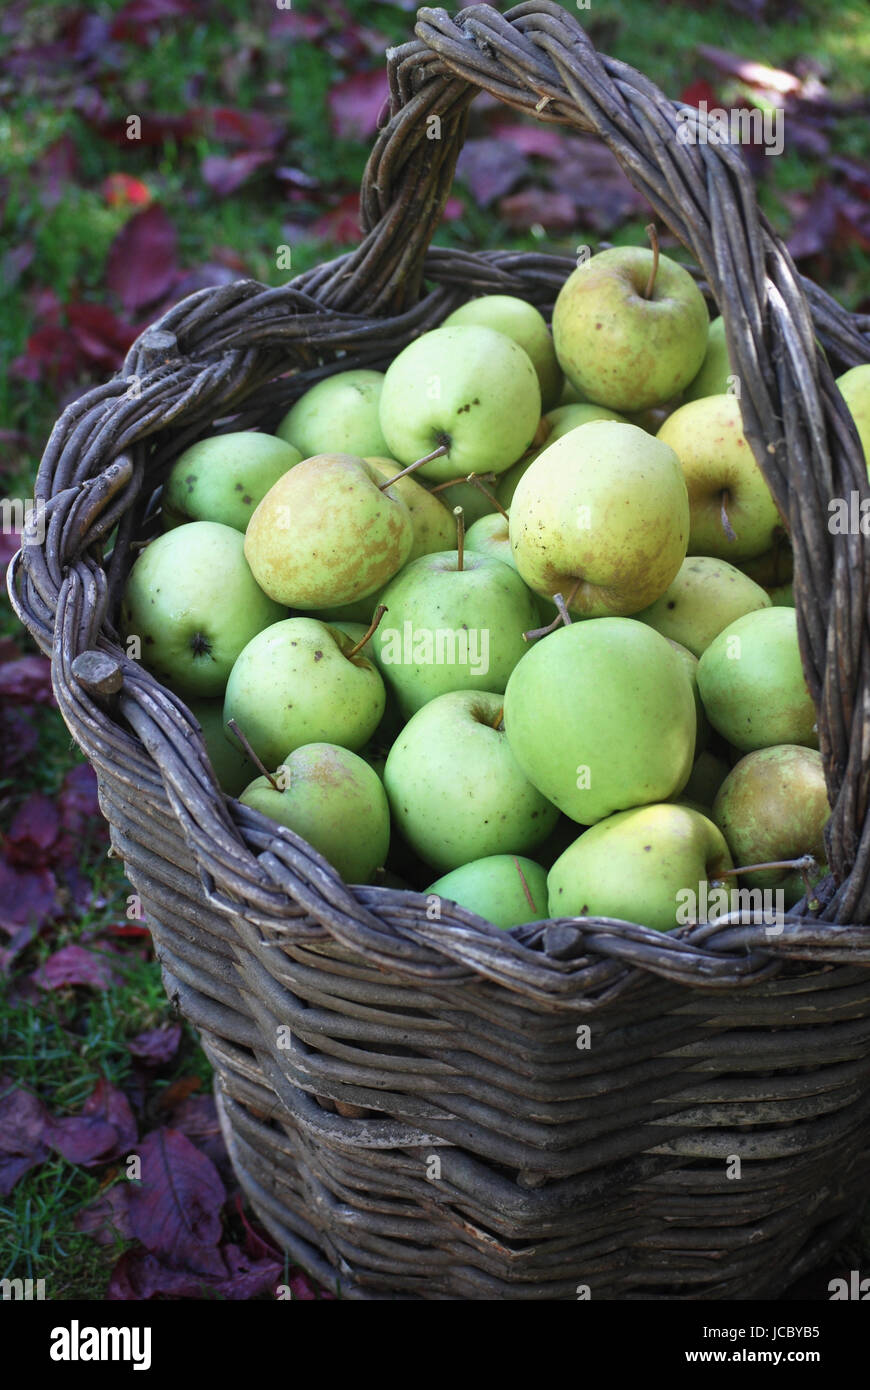 Basket of freshly harvested apples from the autumn orchard - Stock Image